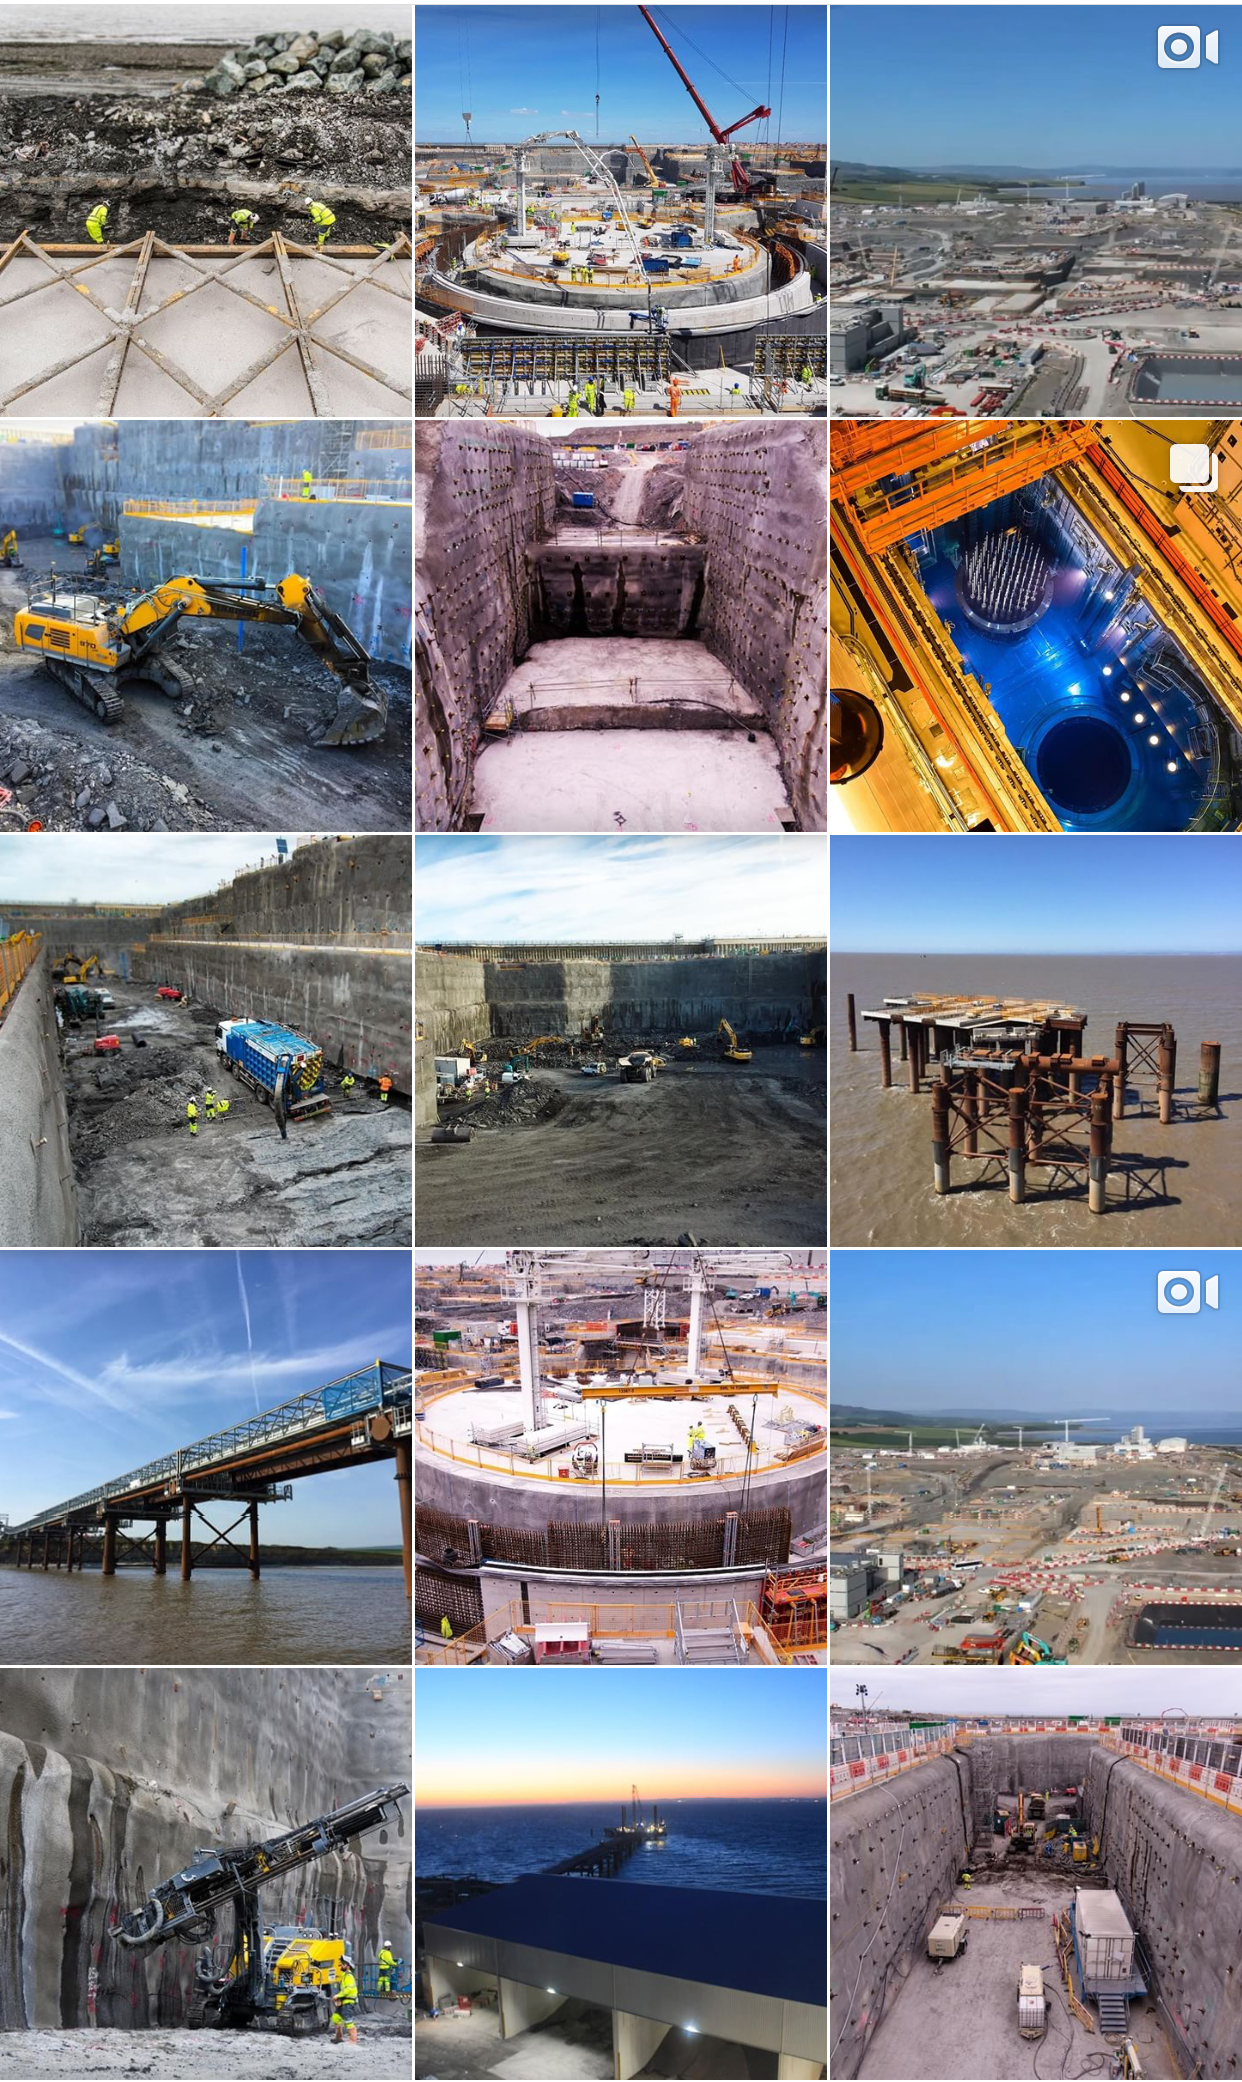 About Hinkley Point C Edf Energy Power Plant Layout Arrangement Latest On Instagram